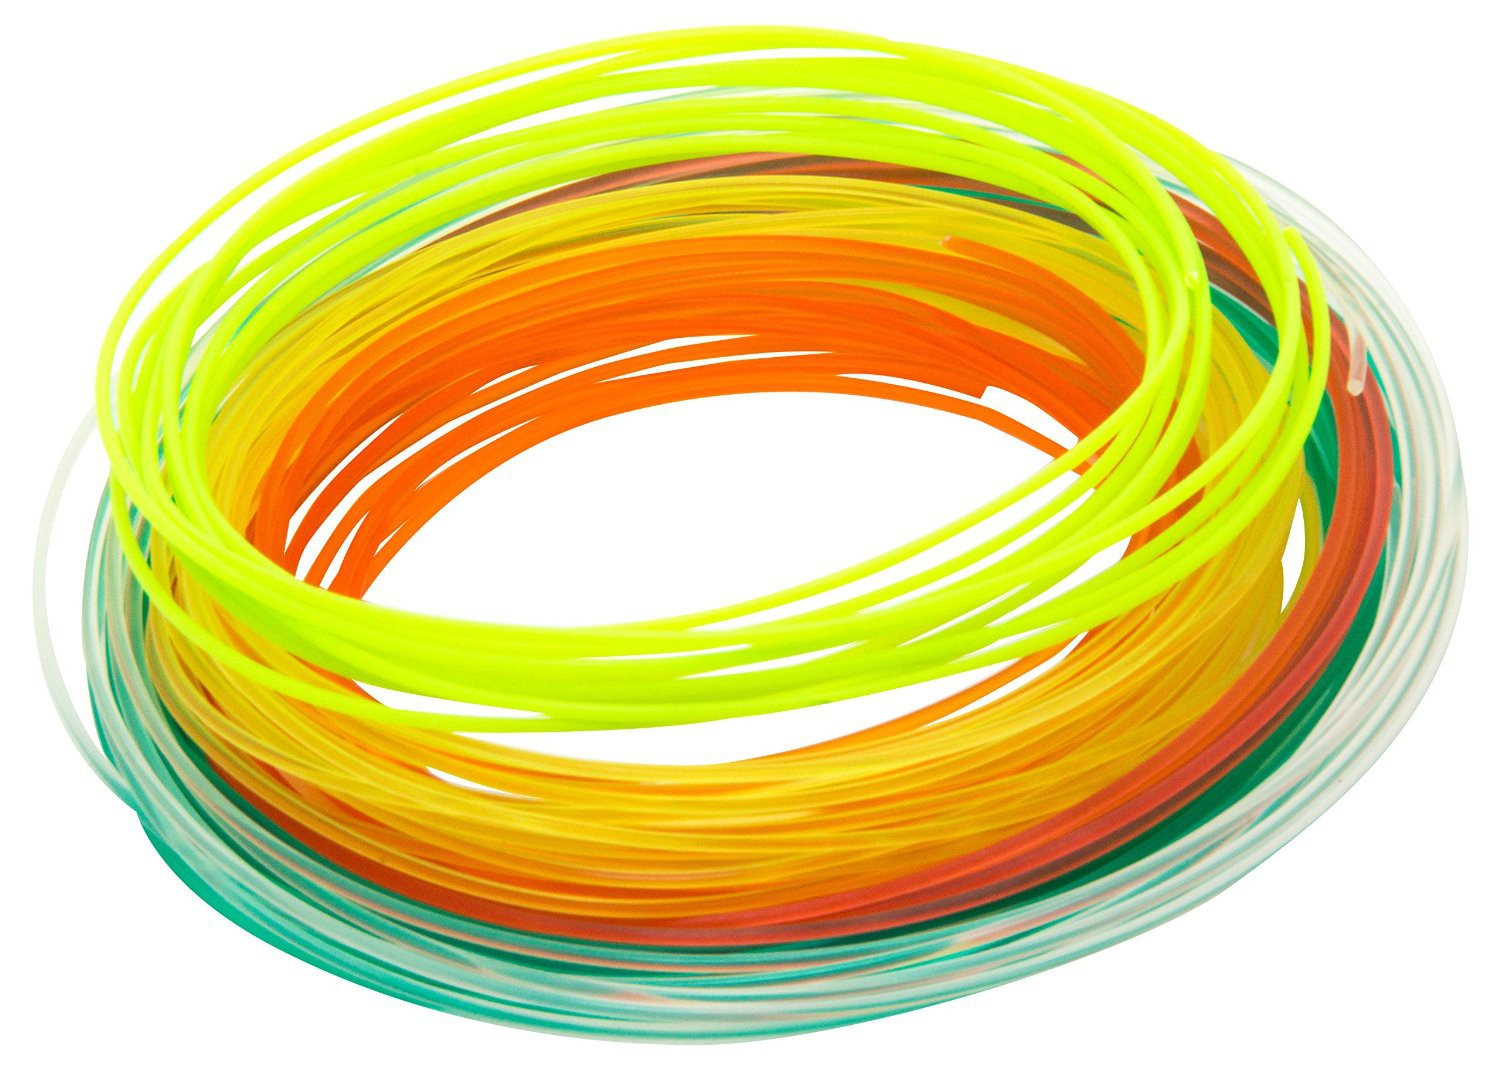 XYZPrinting 3D-Pen PLA 1.75mm Filament 216 g - 6 random colors - 12m of each color